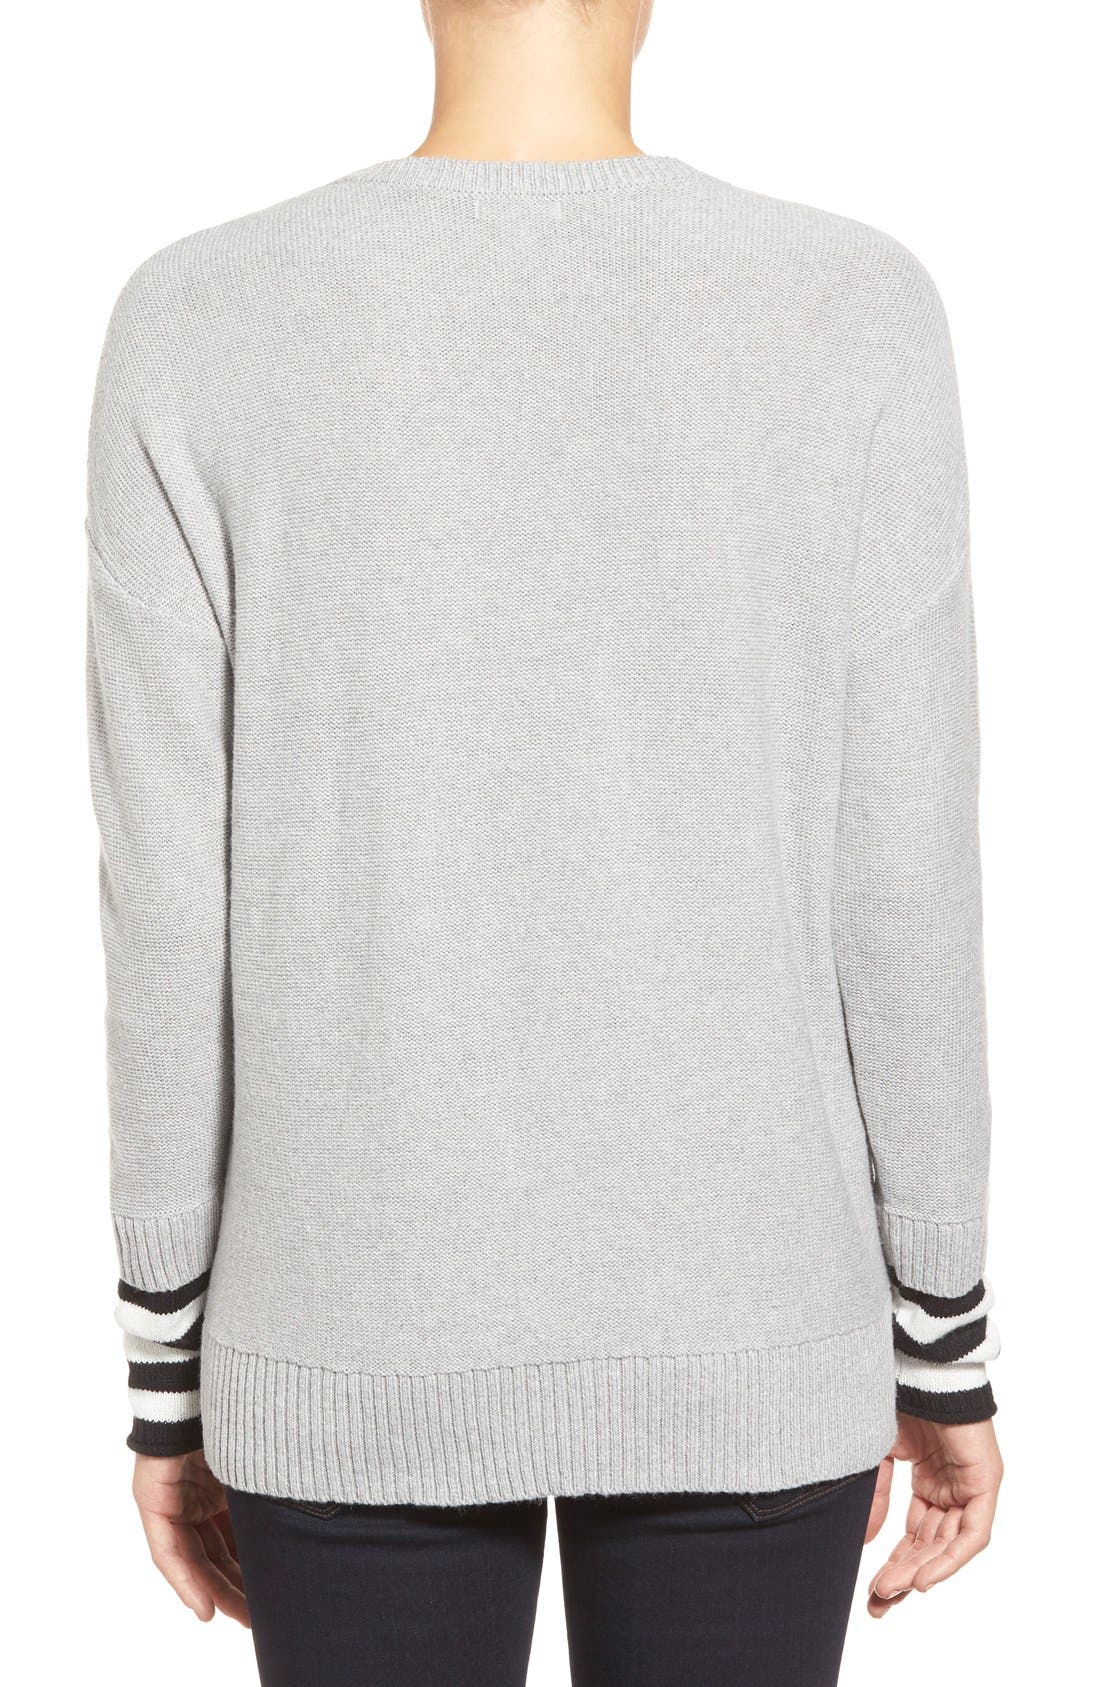 Contrast Cuff Crewneck Sweater,                             Alternate thumbnail 7, color,                             030